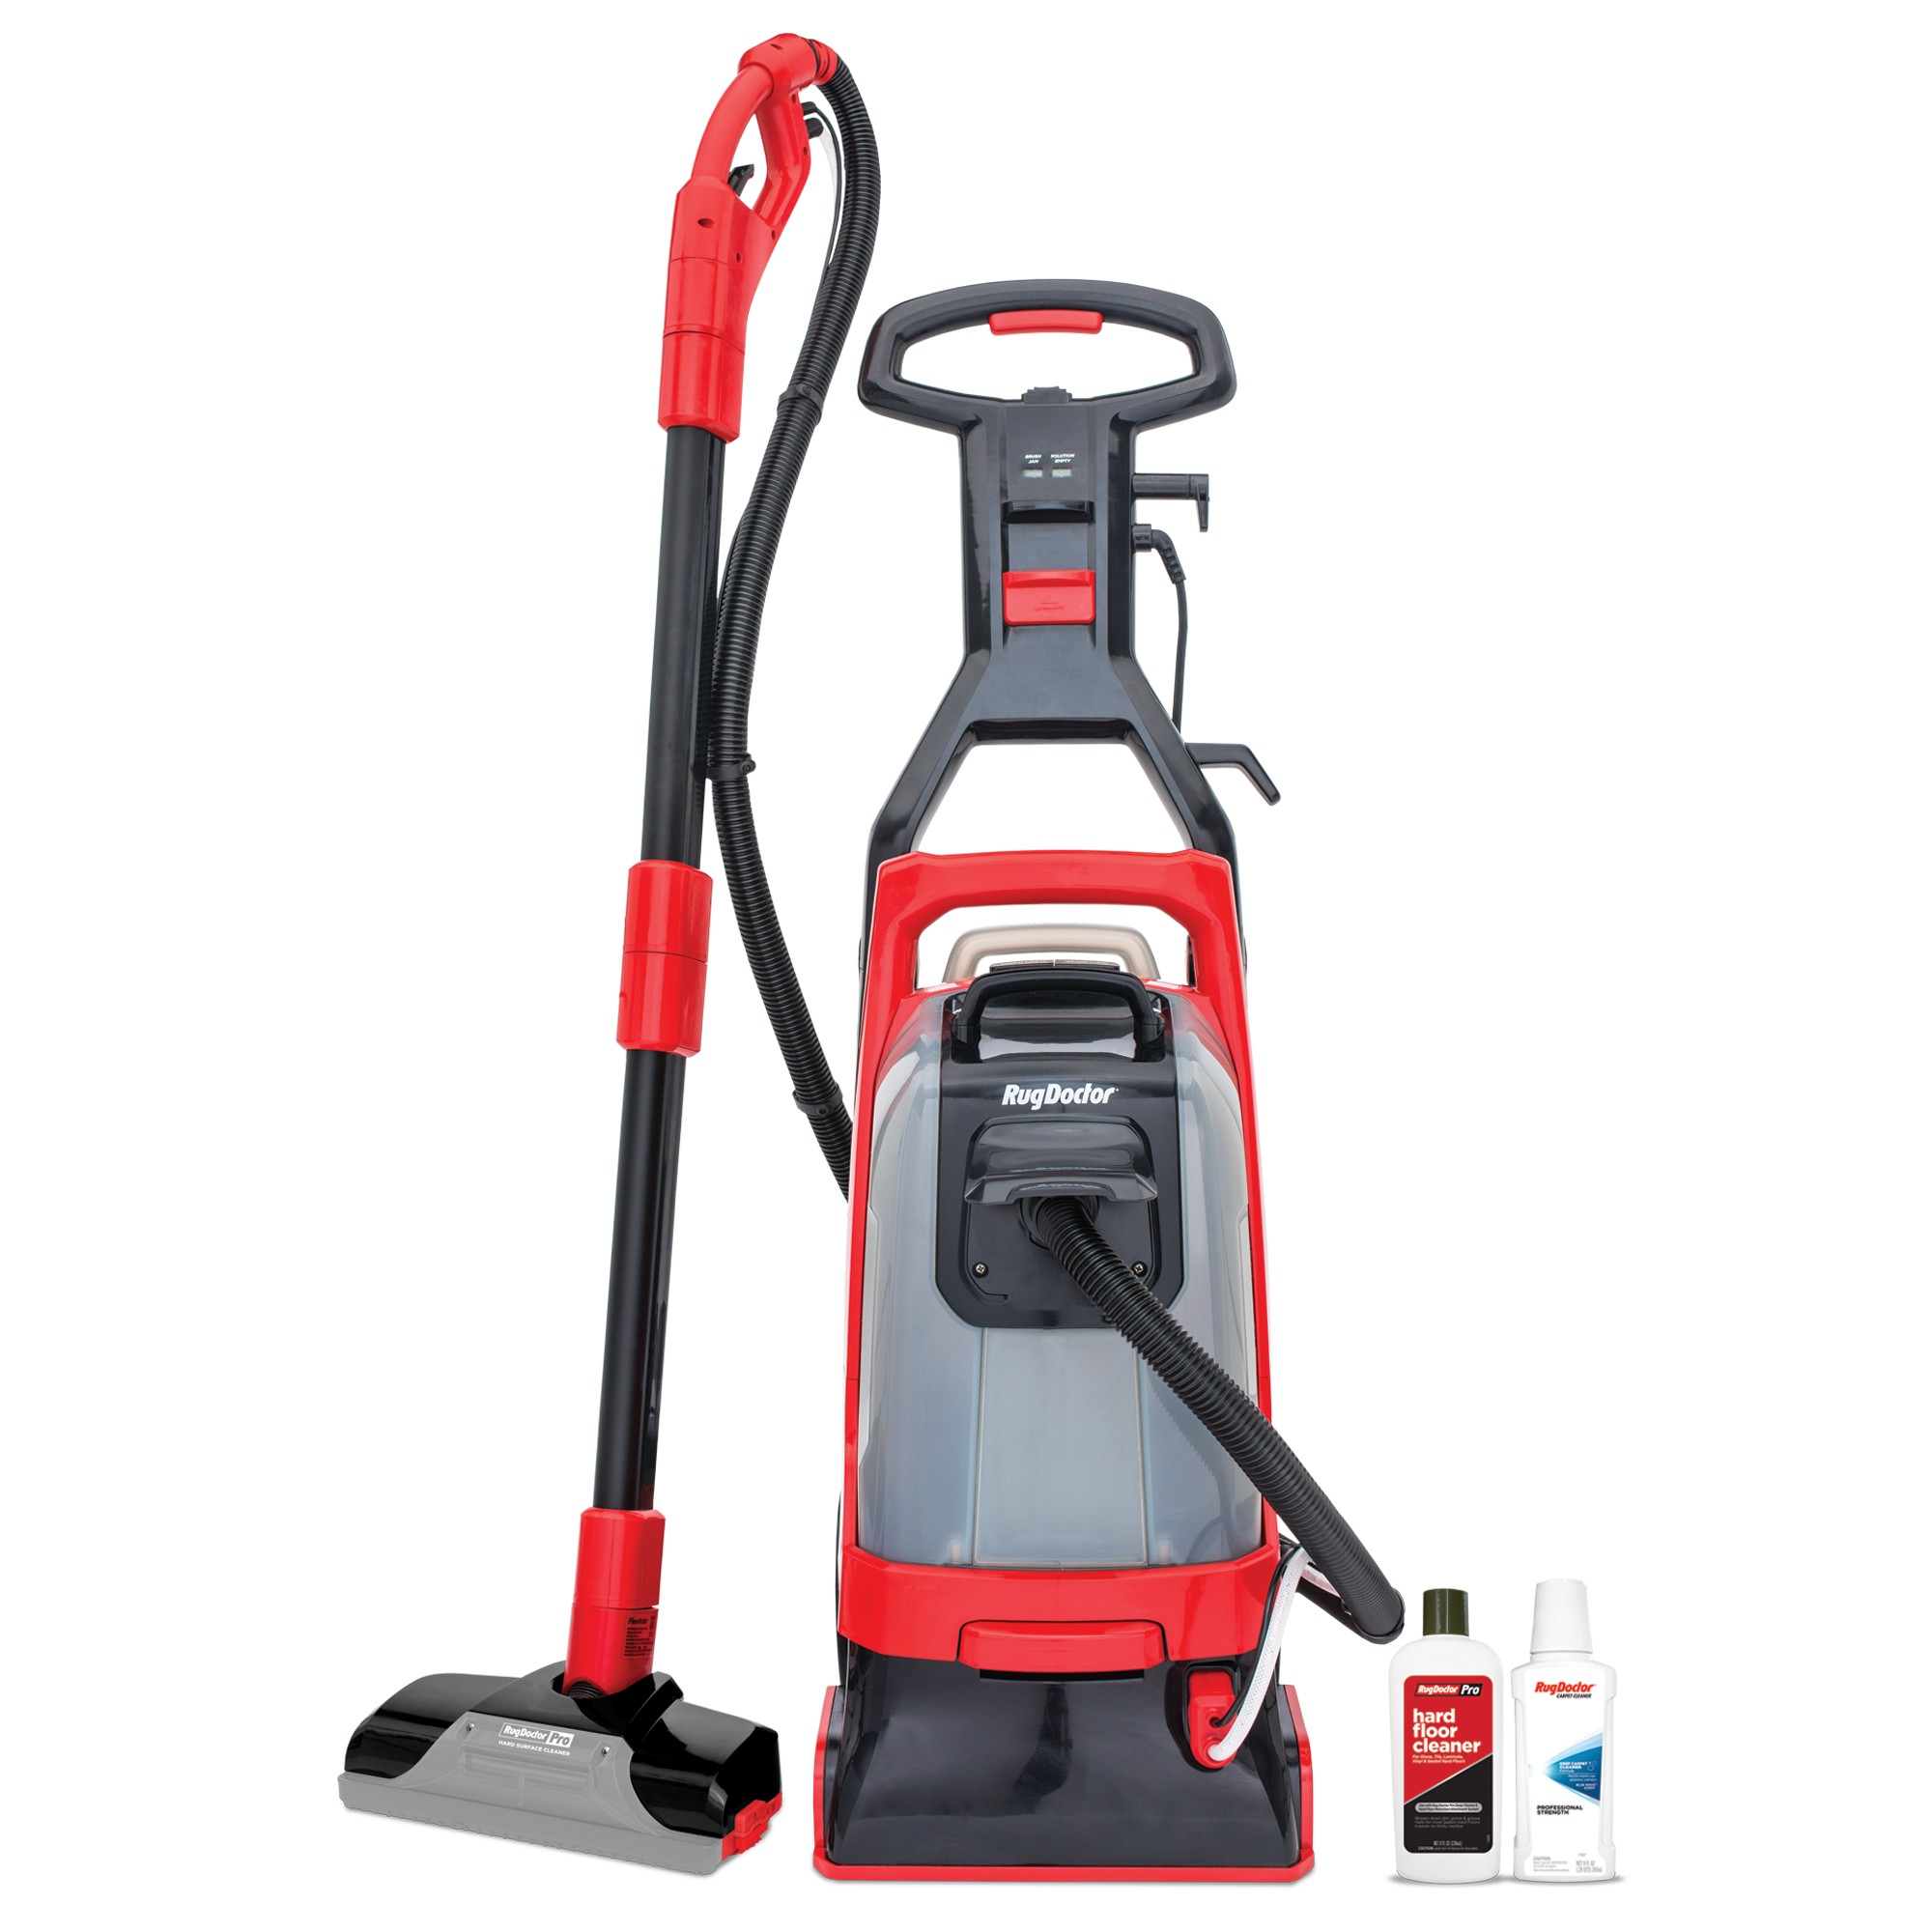 Image Result For Carpet Cleaning Machine Rental